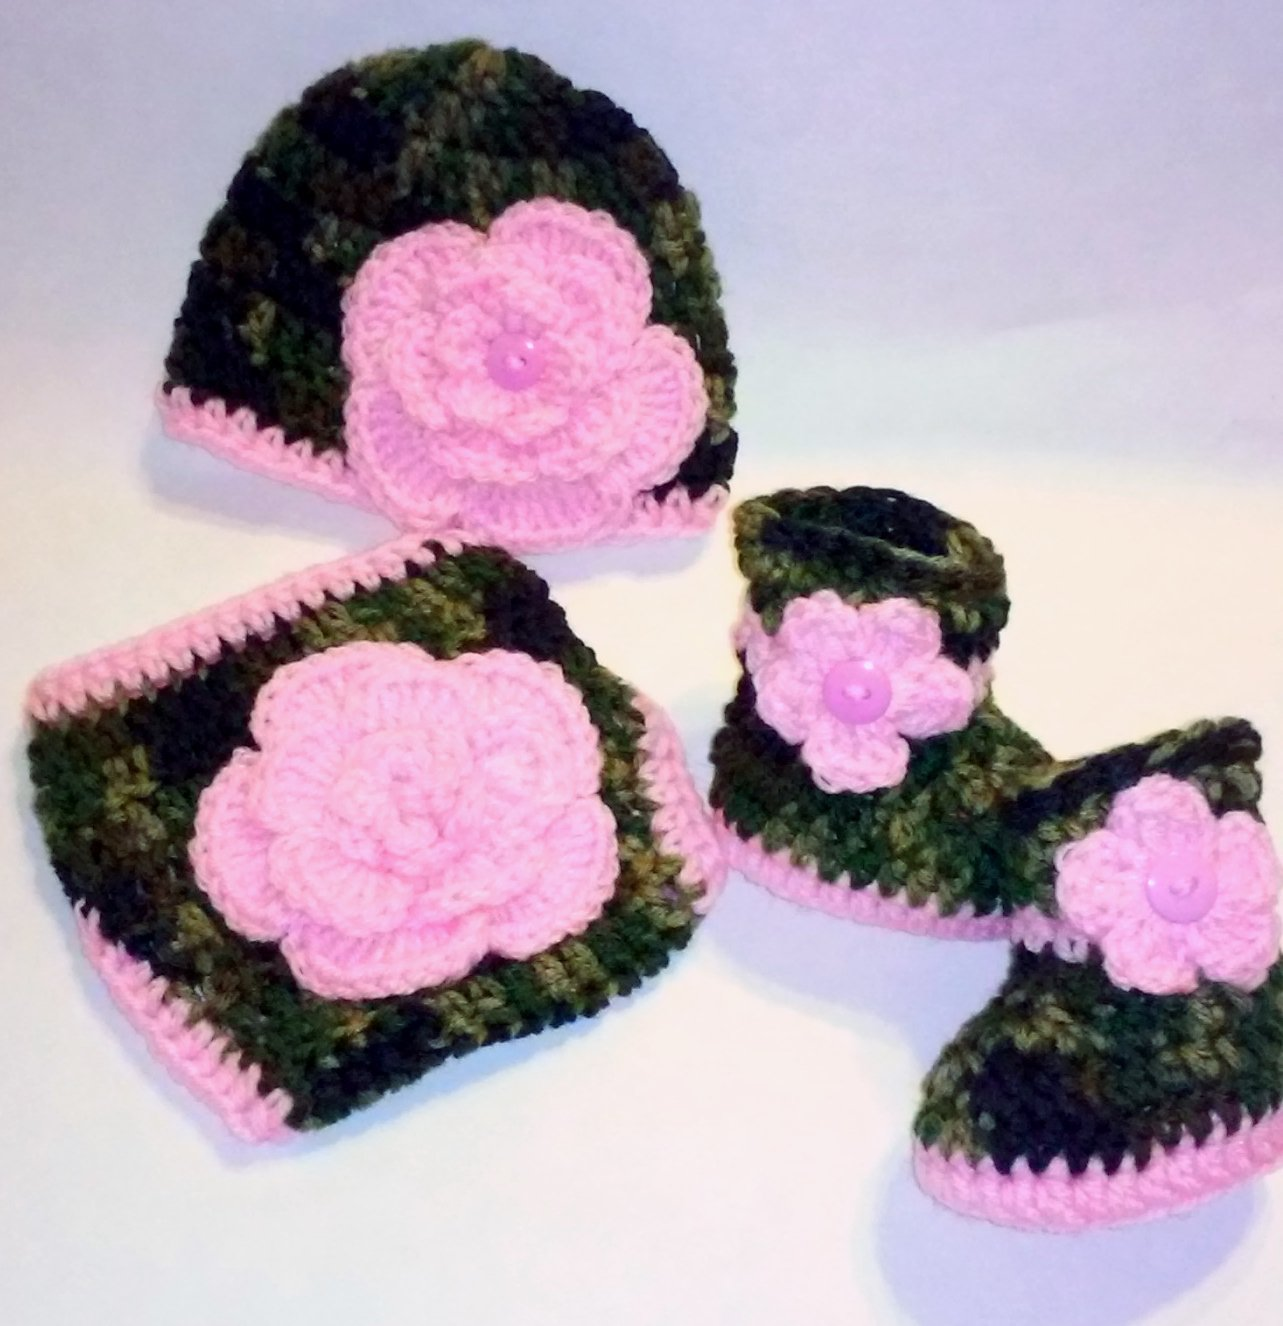 Crochet Dark Camo and Floral Diaper Cover Set in Baby Pink with Hat, Booties Newborn 0-3 Months